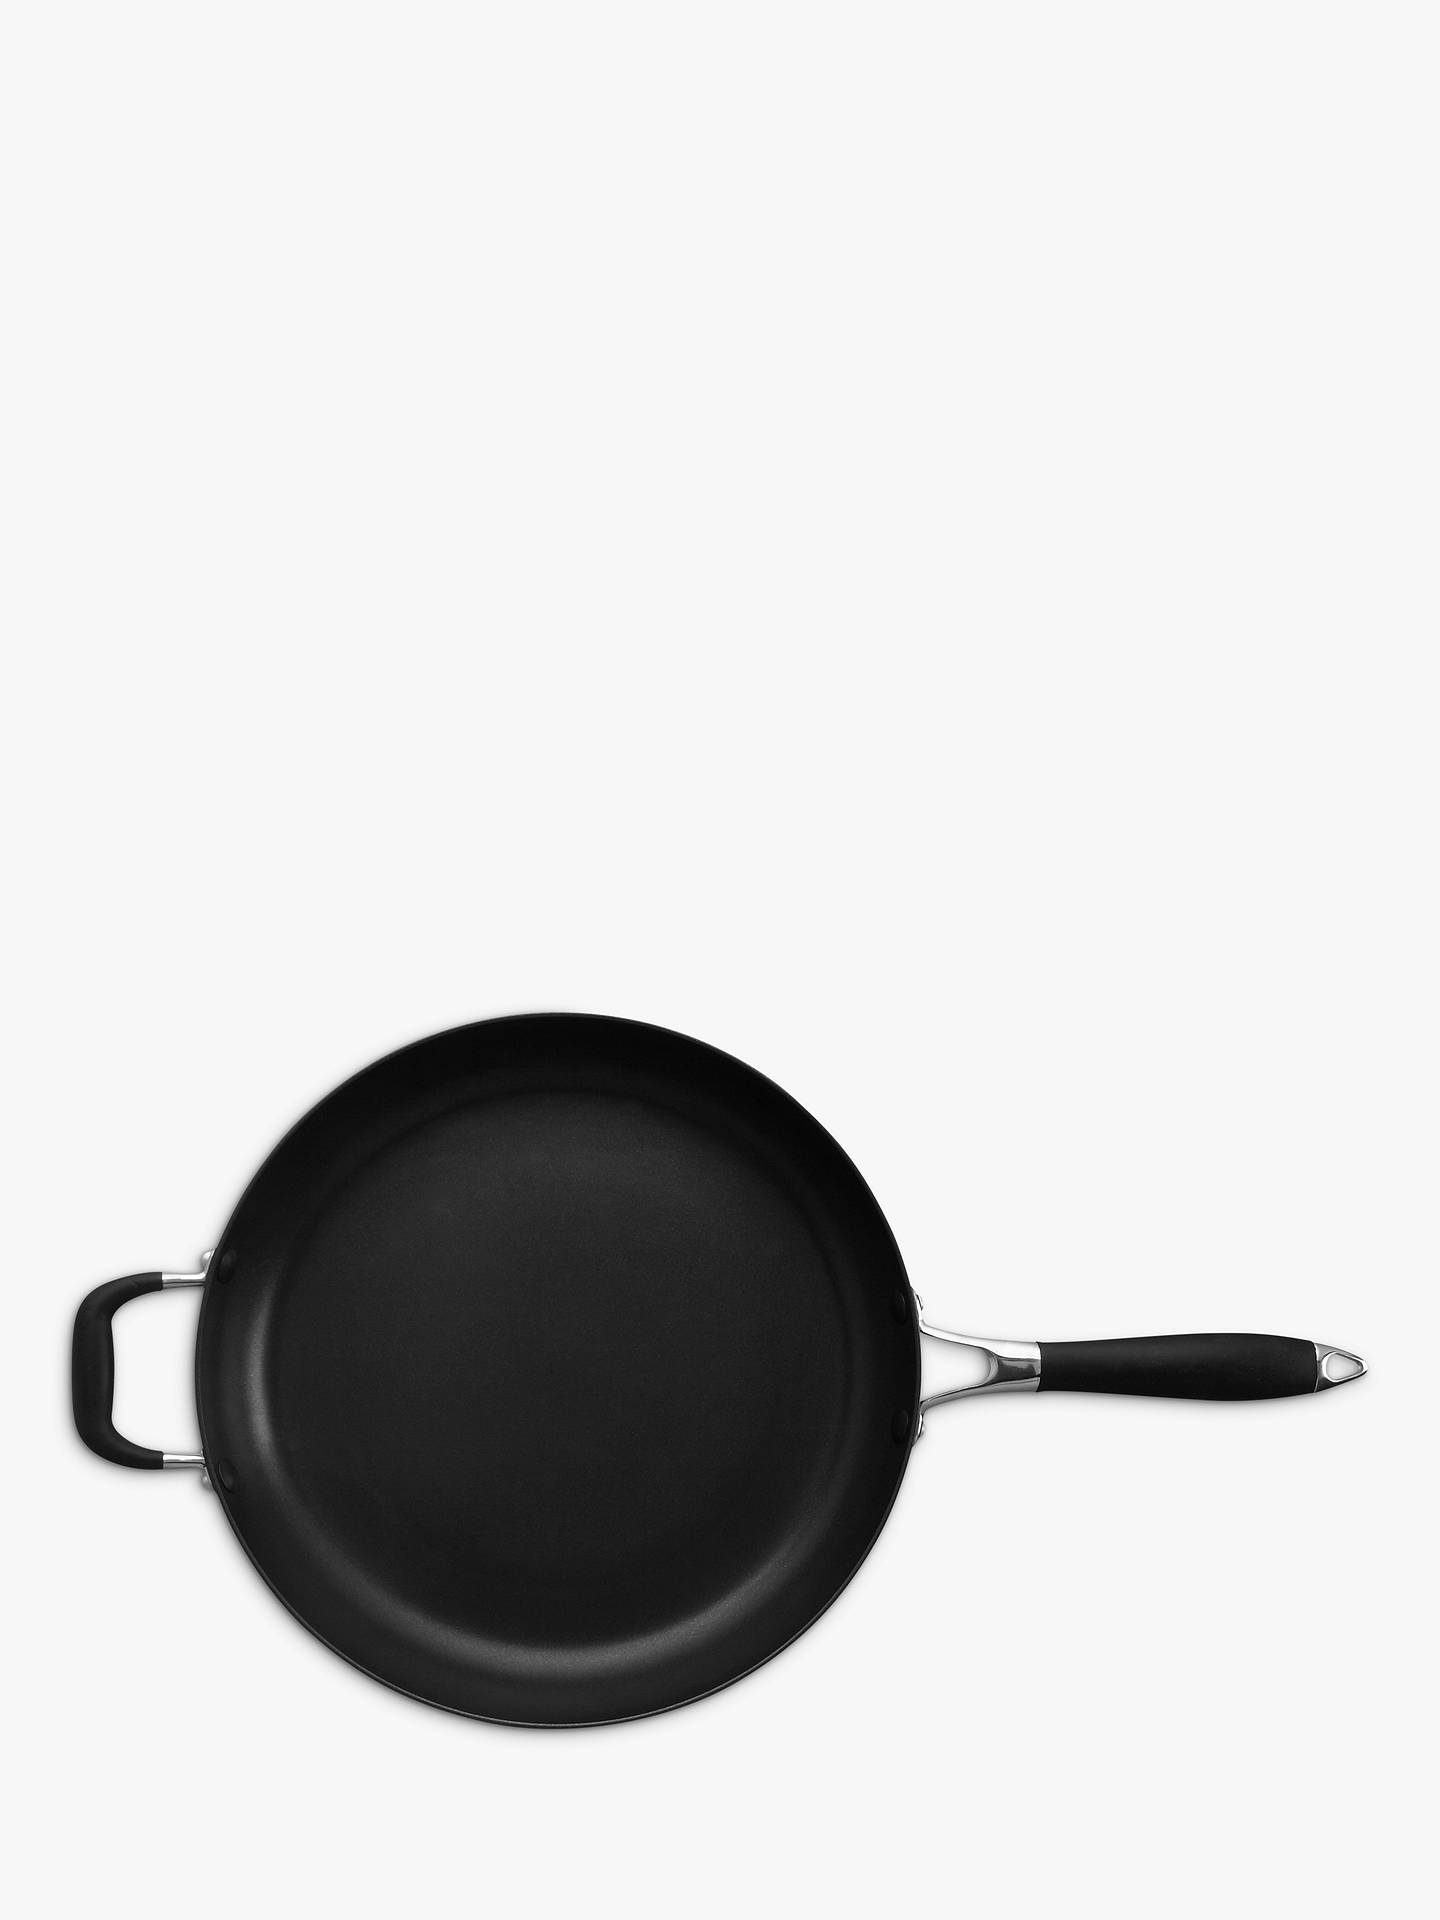 Buy John Lewis & Partners 'The Pan' Aluminium Non-Stick Frying Pan With Helper Handle, 32cm Online at johnlewis.com